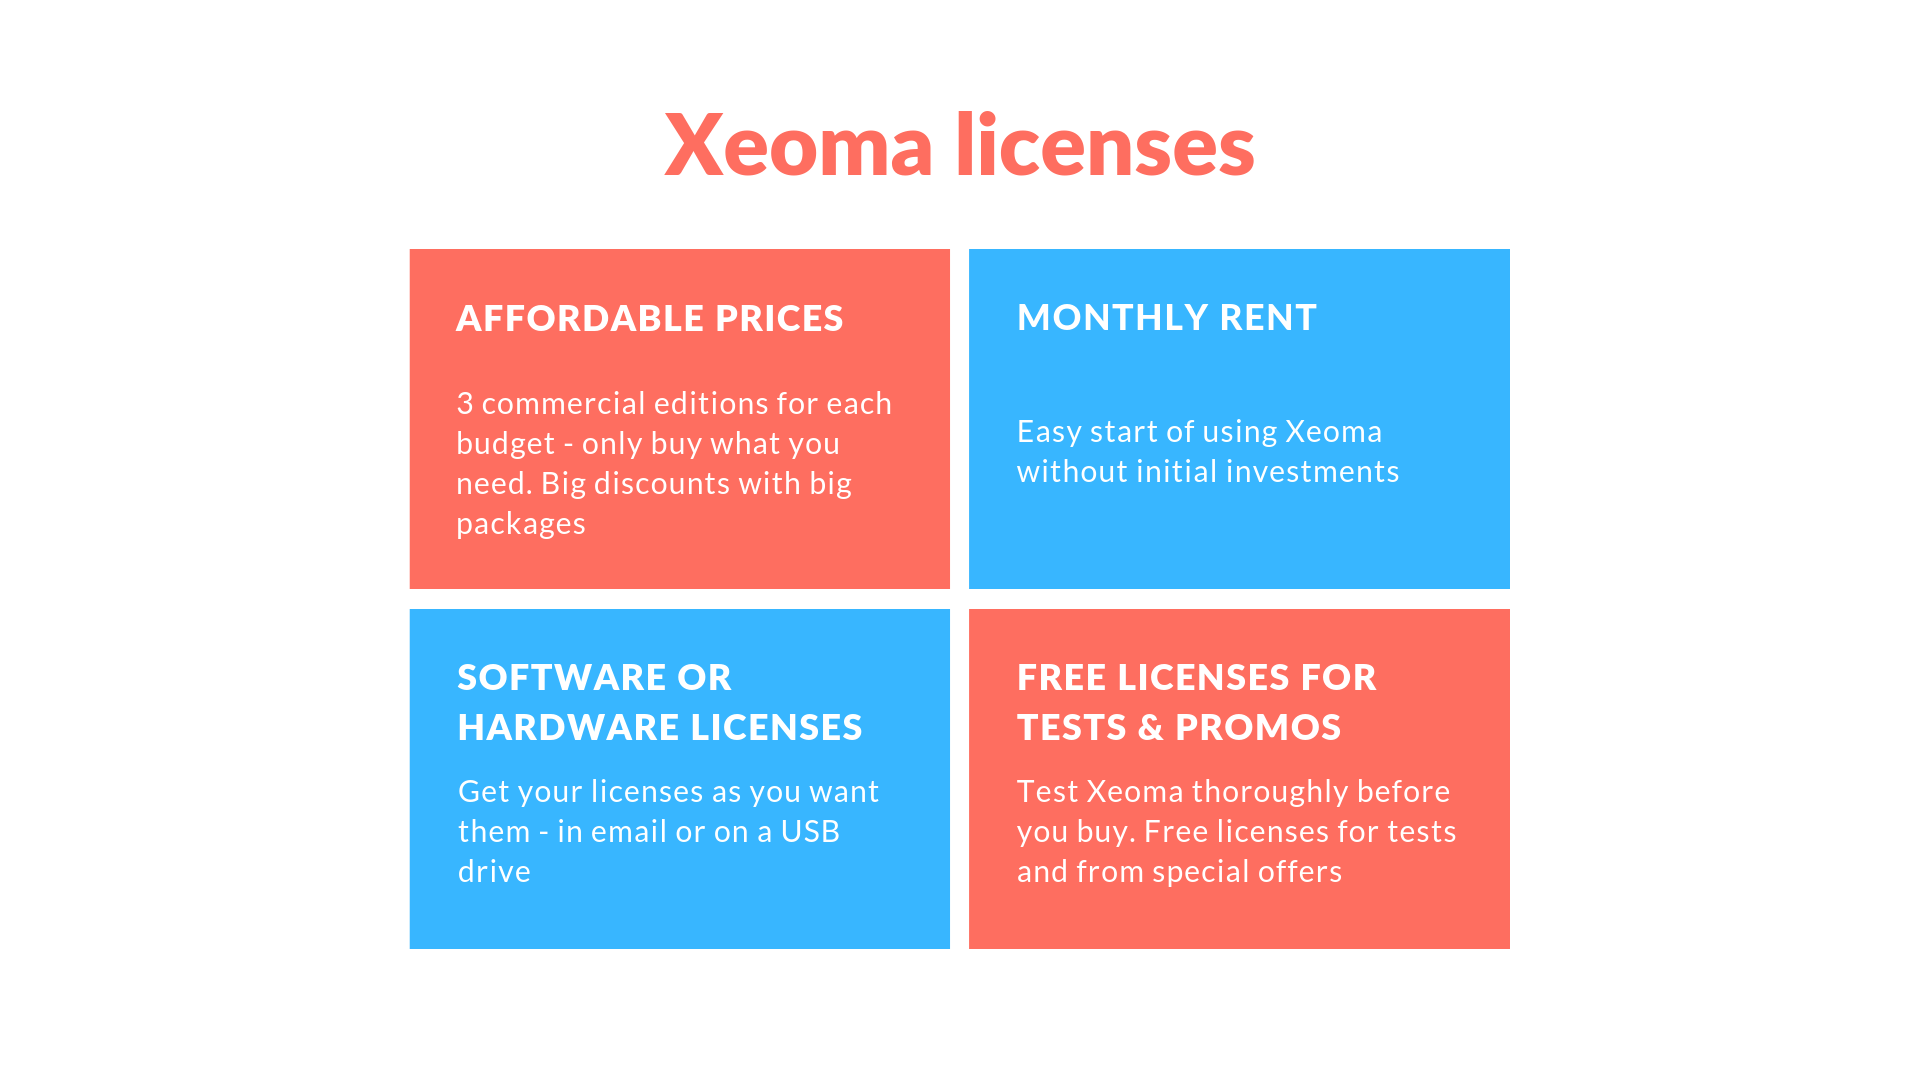 xeoma_best_software_surveillance_affordable_prices